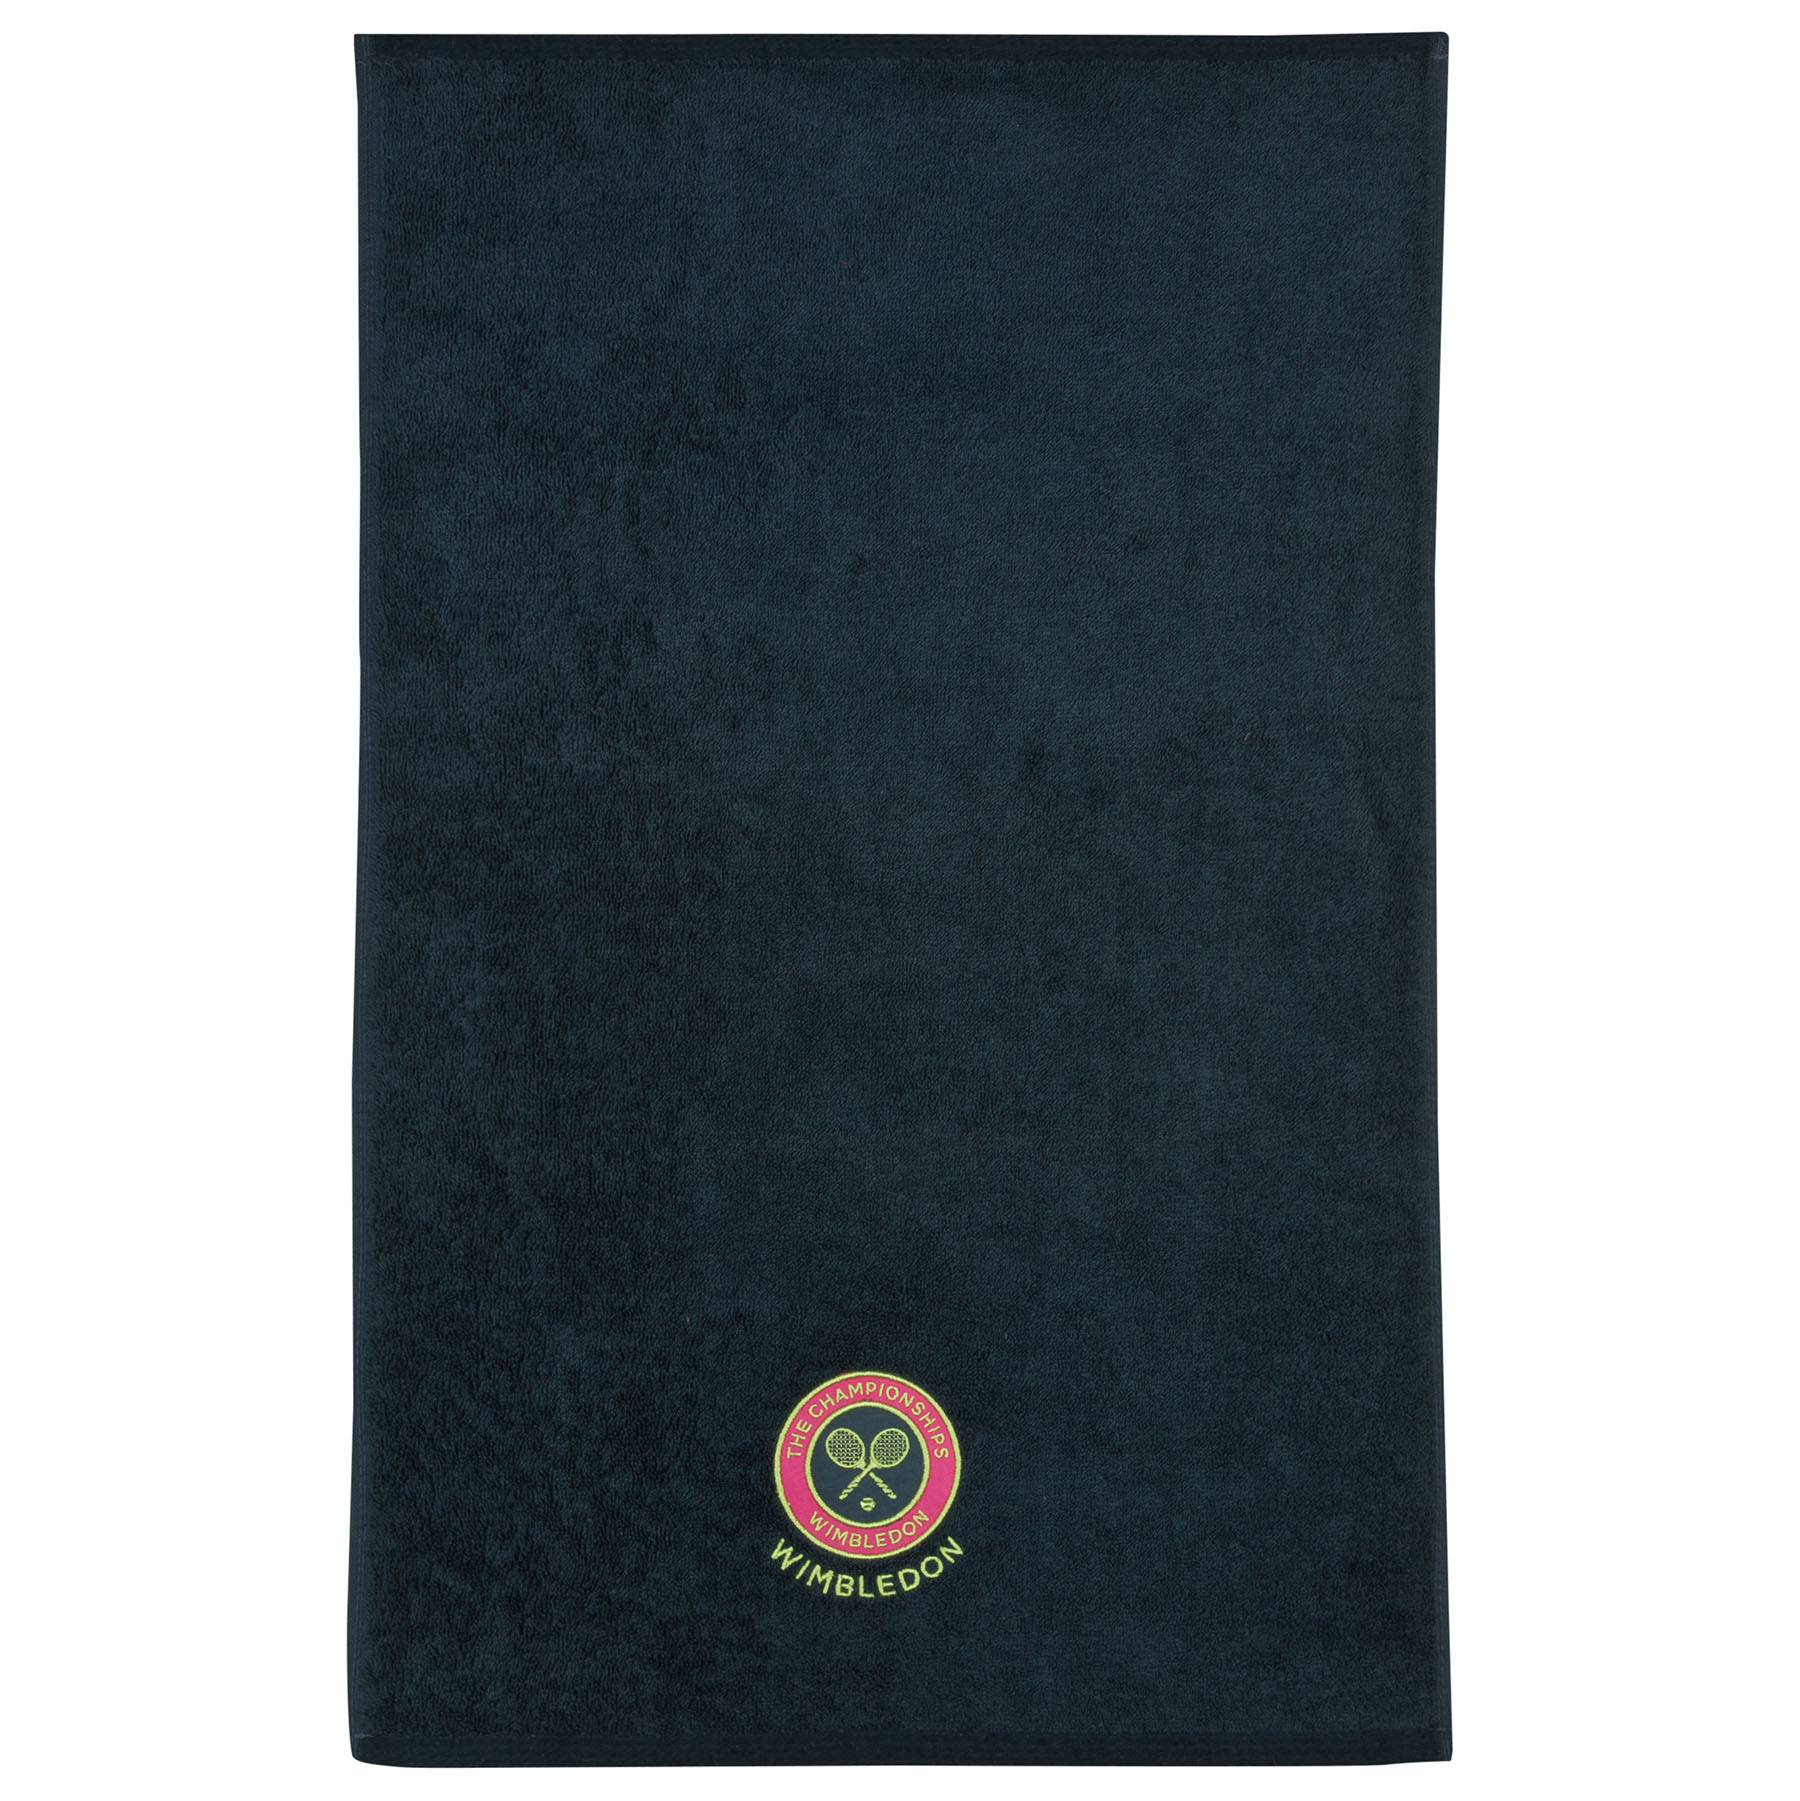 Wimbledon Ladies 2015 Guest Towel - Charcoal